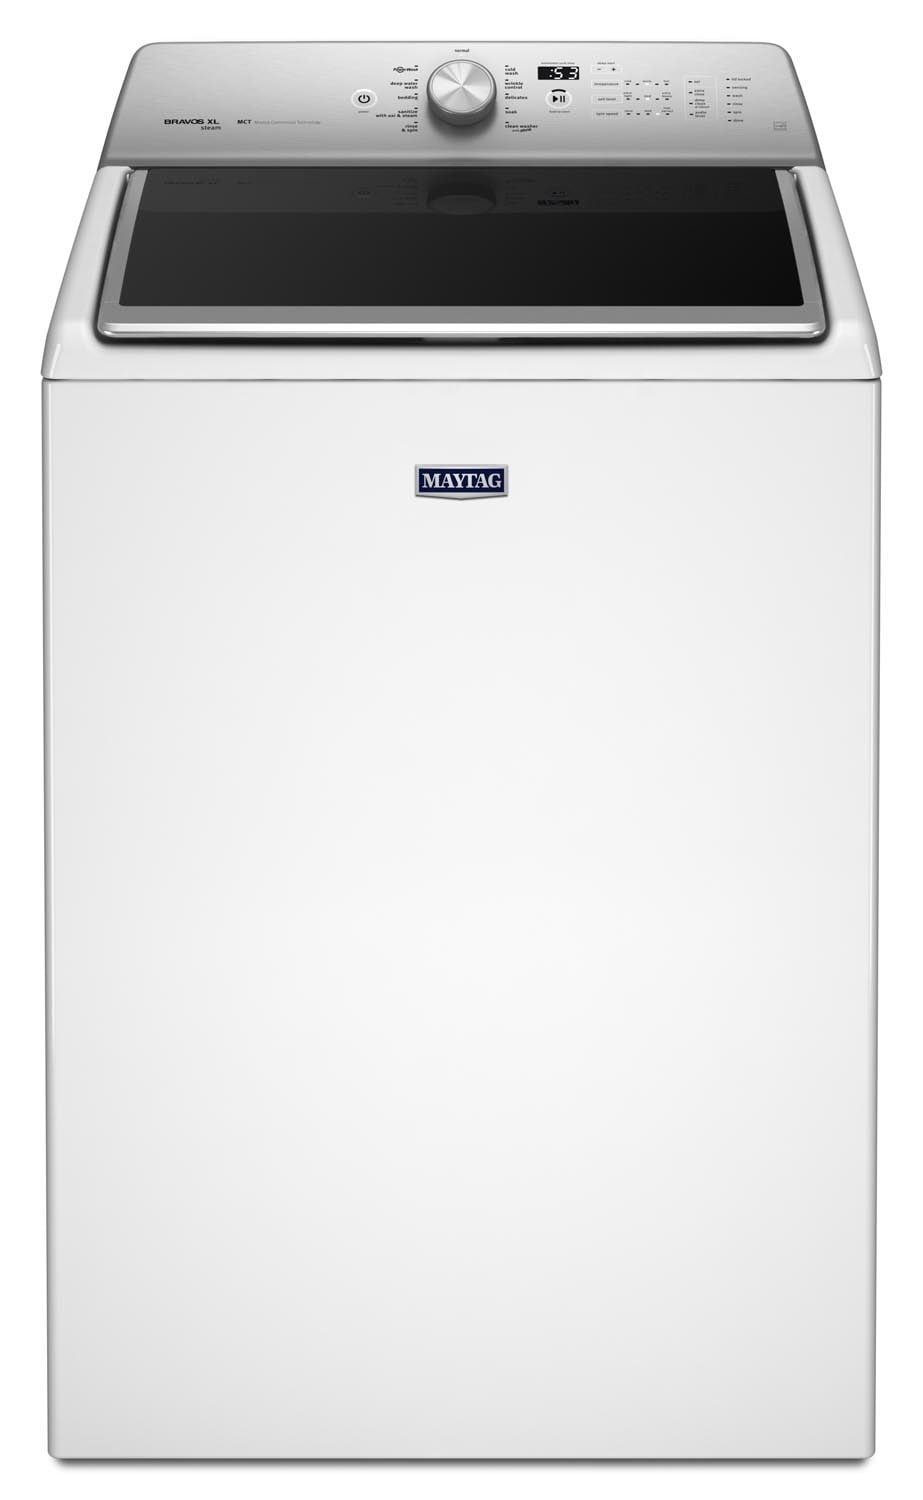 Maytag® 6.1 Cu. Ft. Top-Loading Washer - White